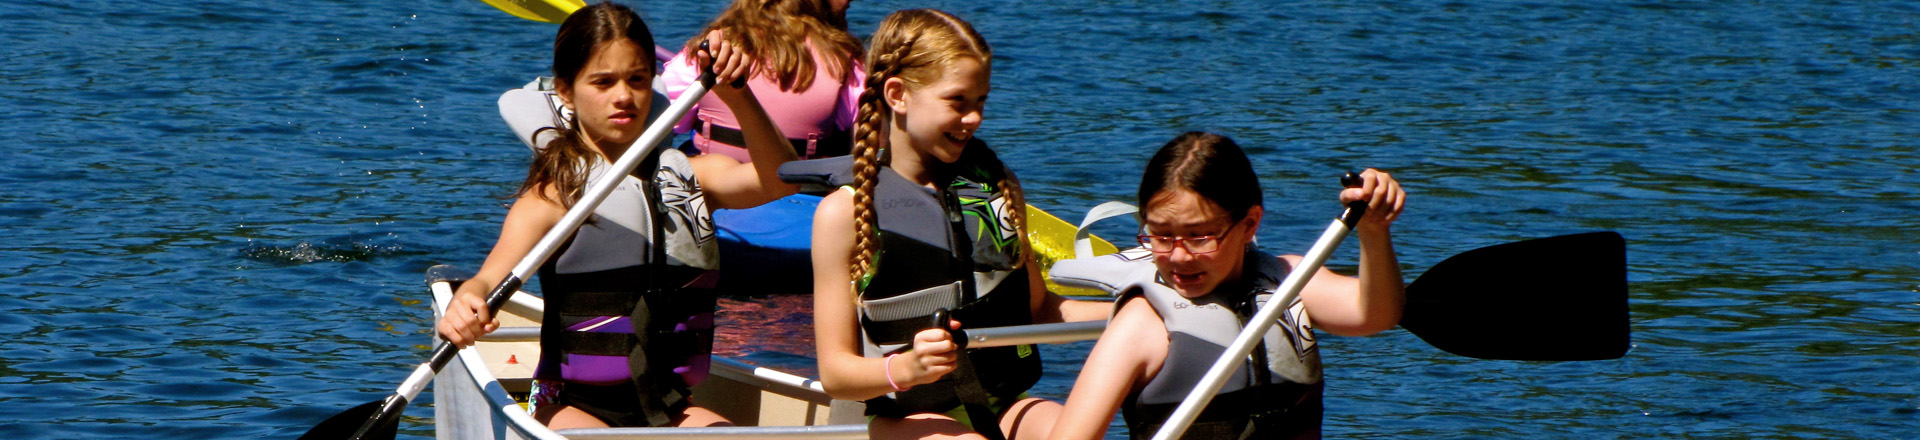 Kawkawa Camp and Retreat, Hope BC - Summer Camp